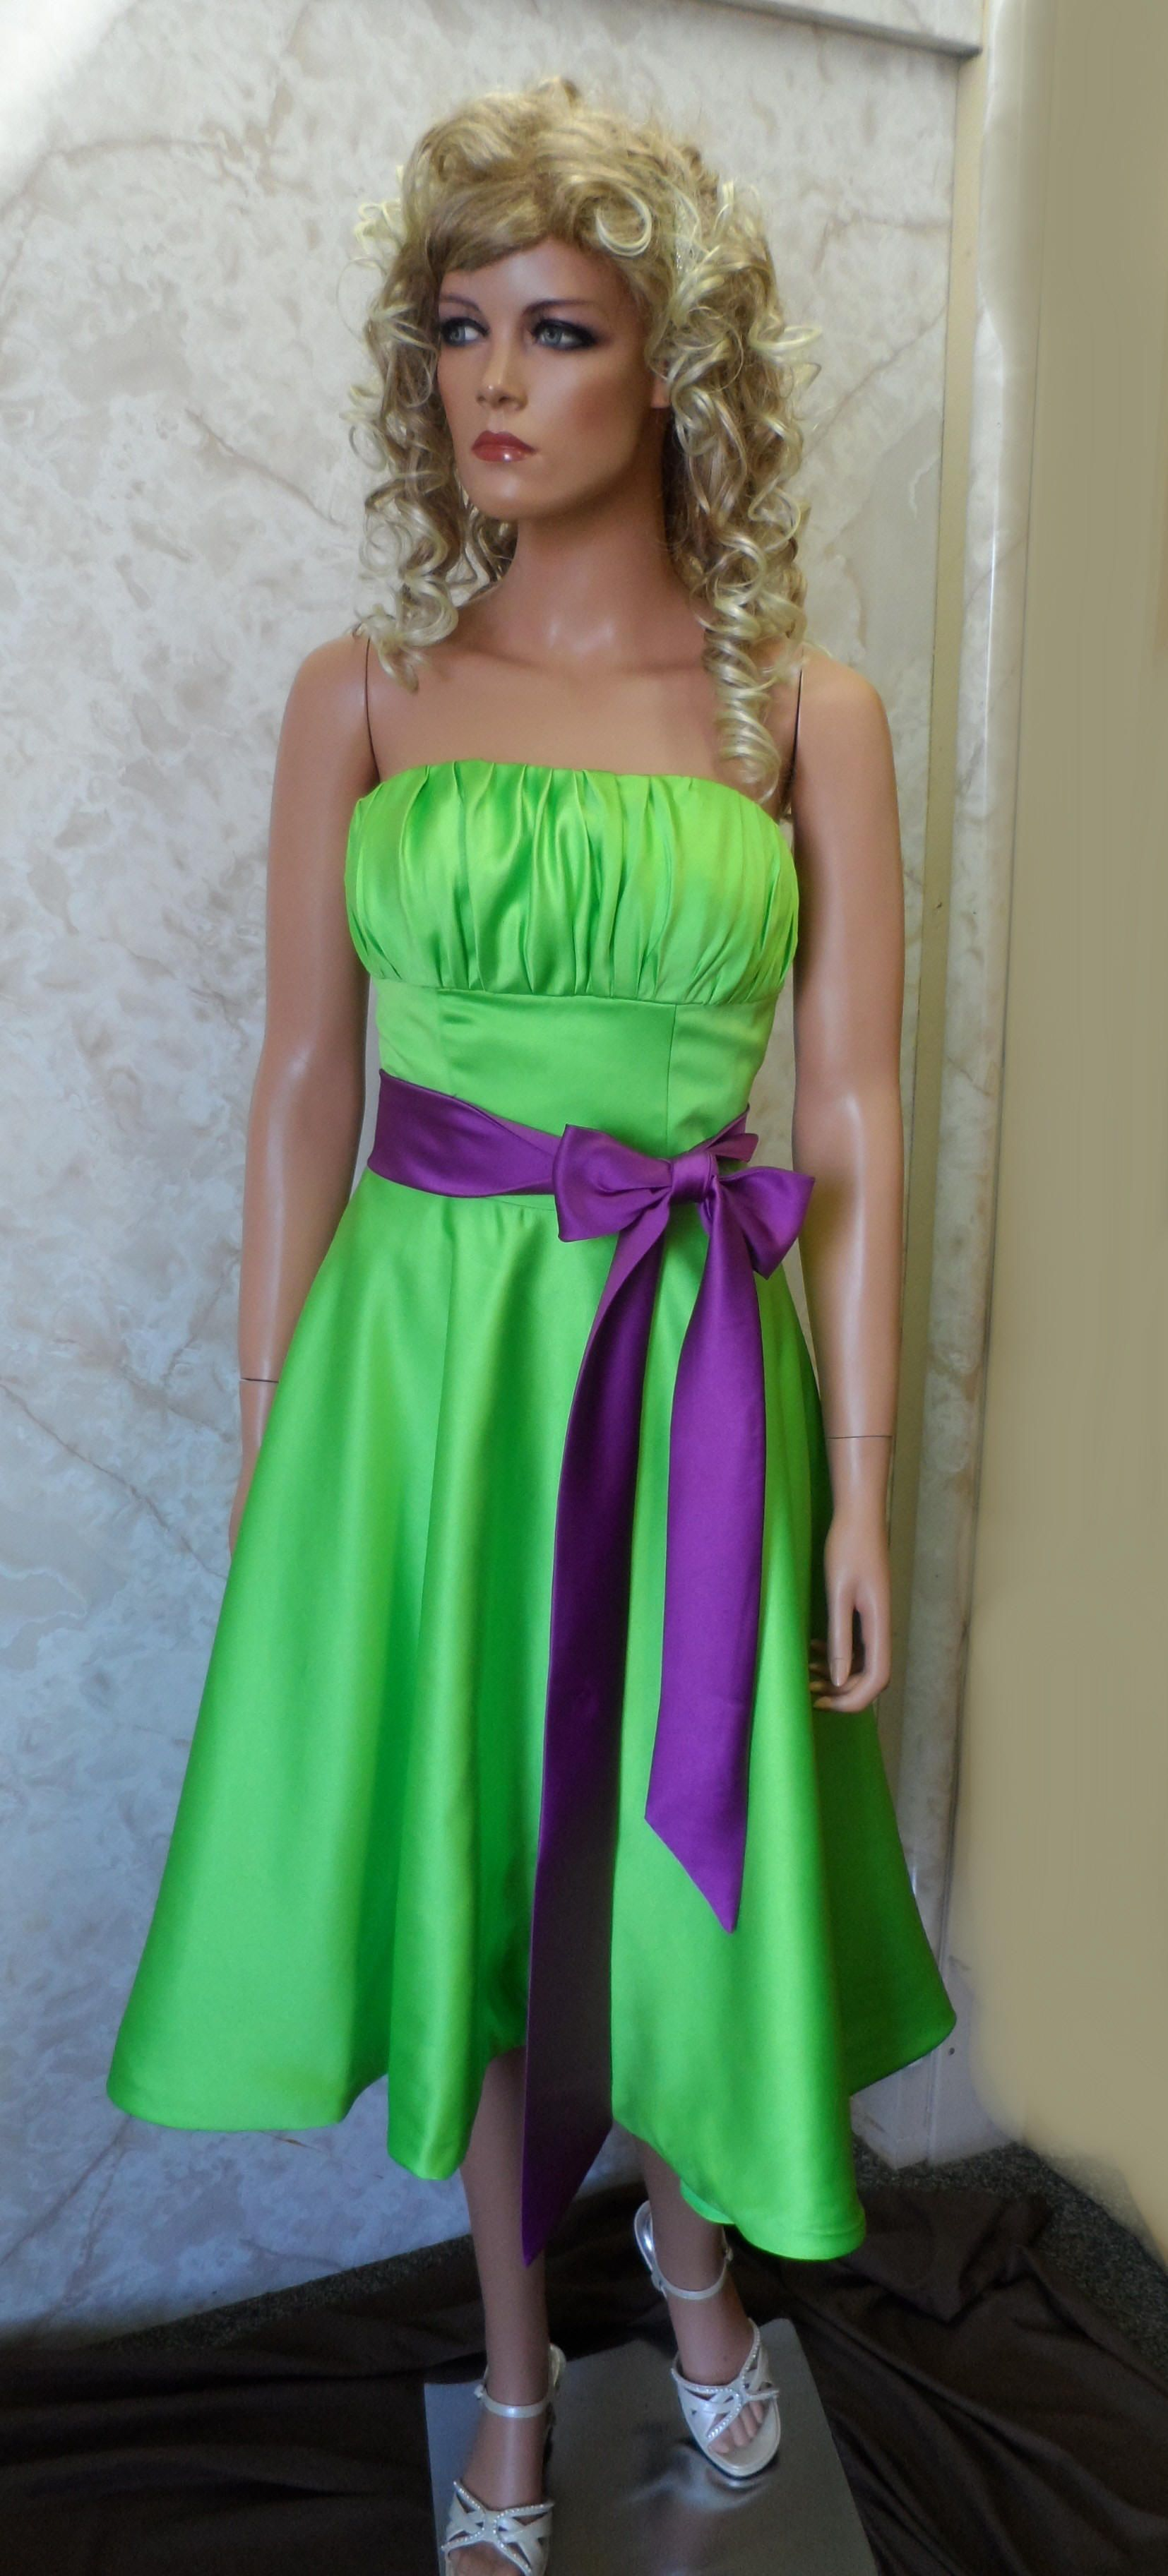 bfc76bbf0818e purple+and+green+wedding | short green bridesmaid dress with purple sash